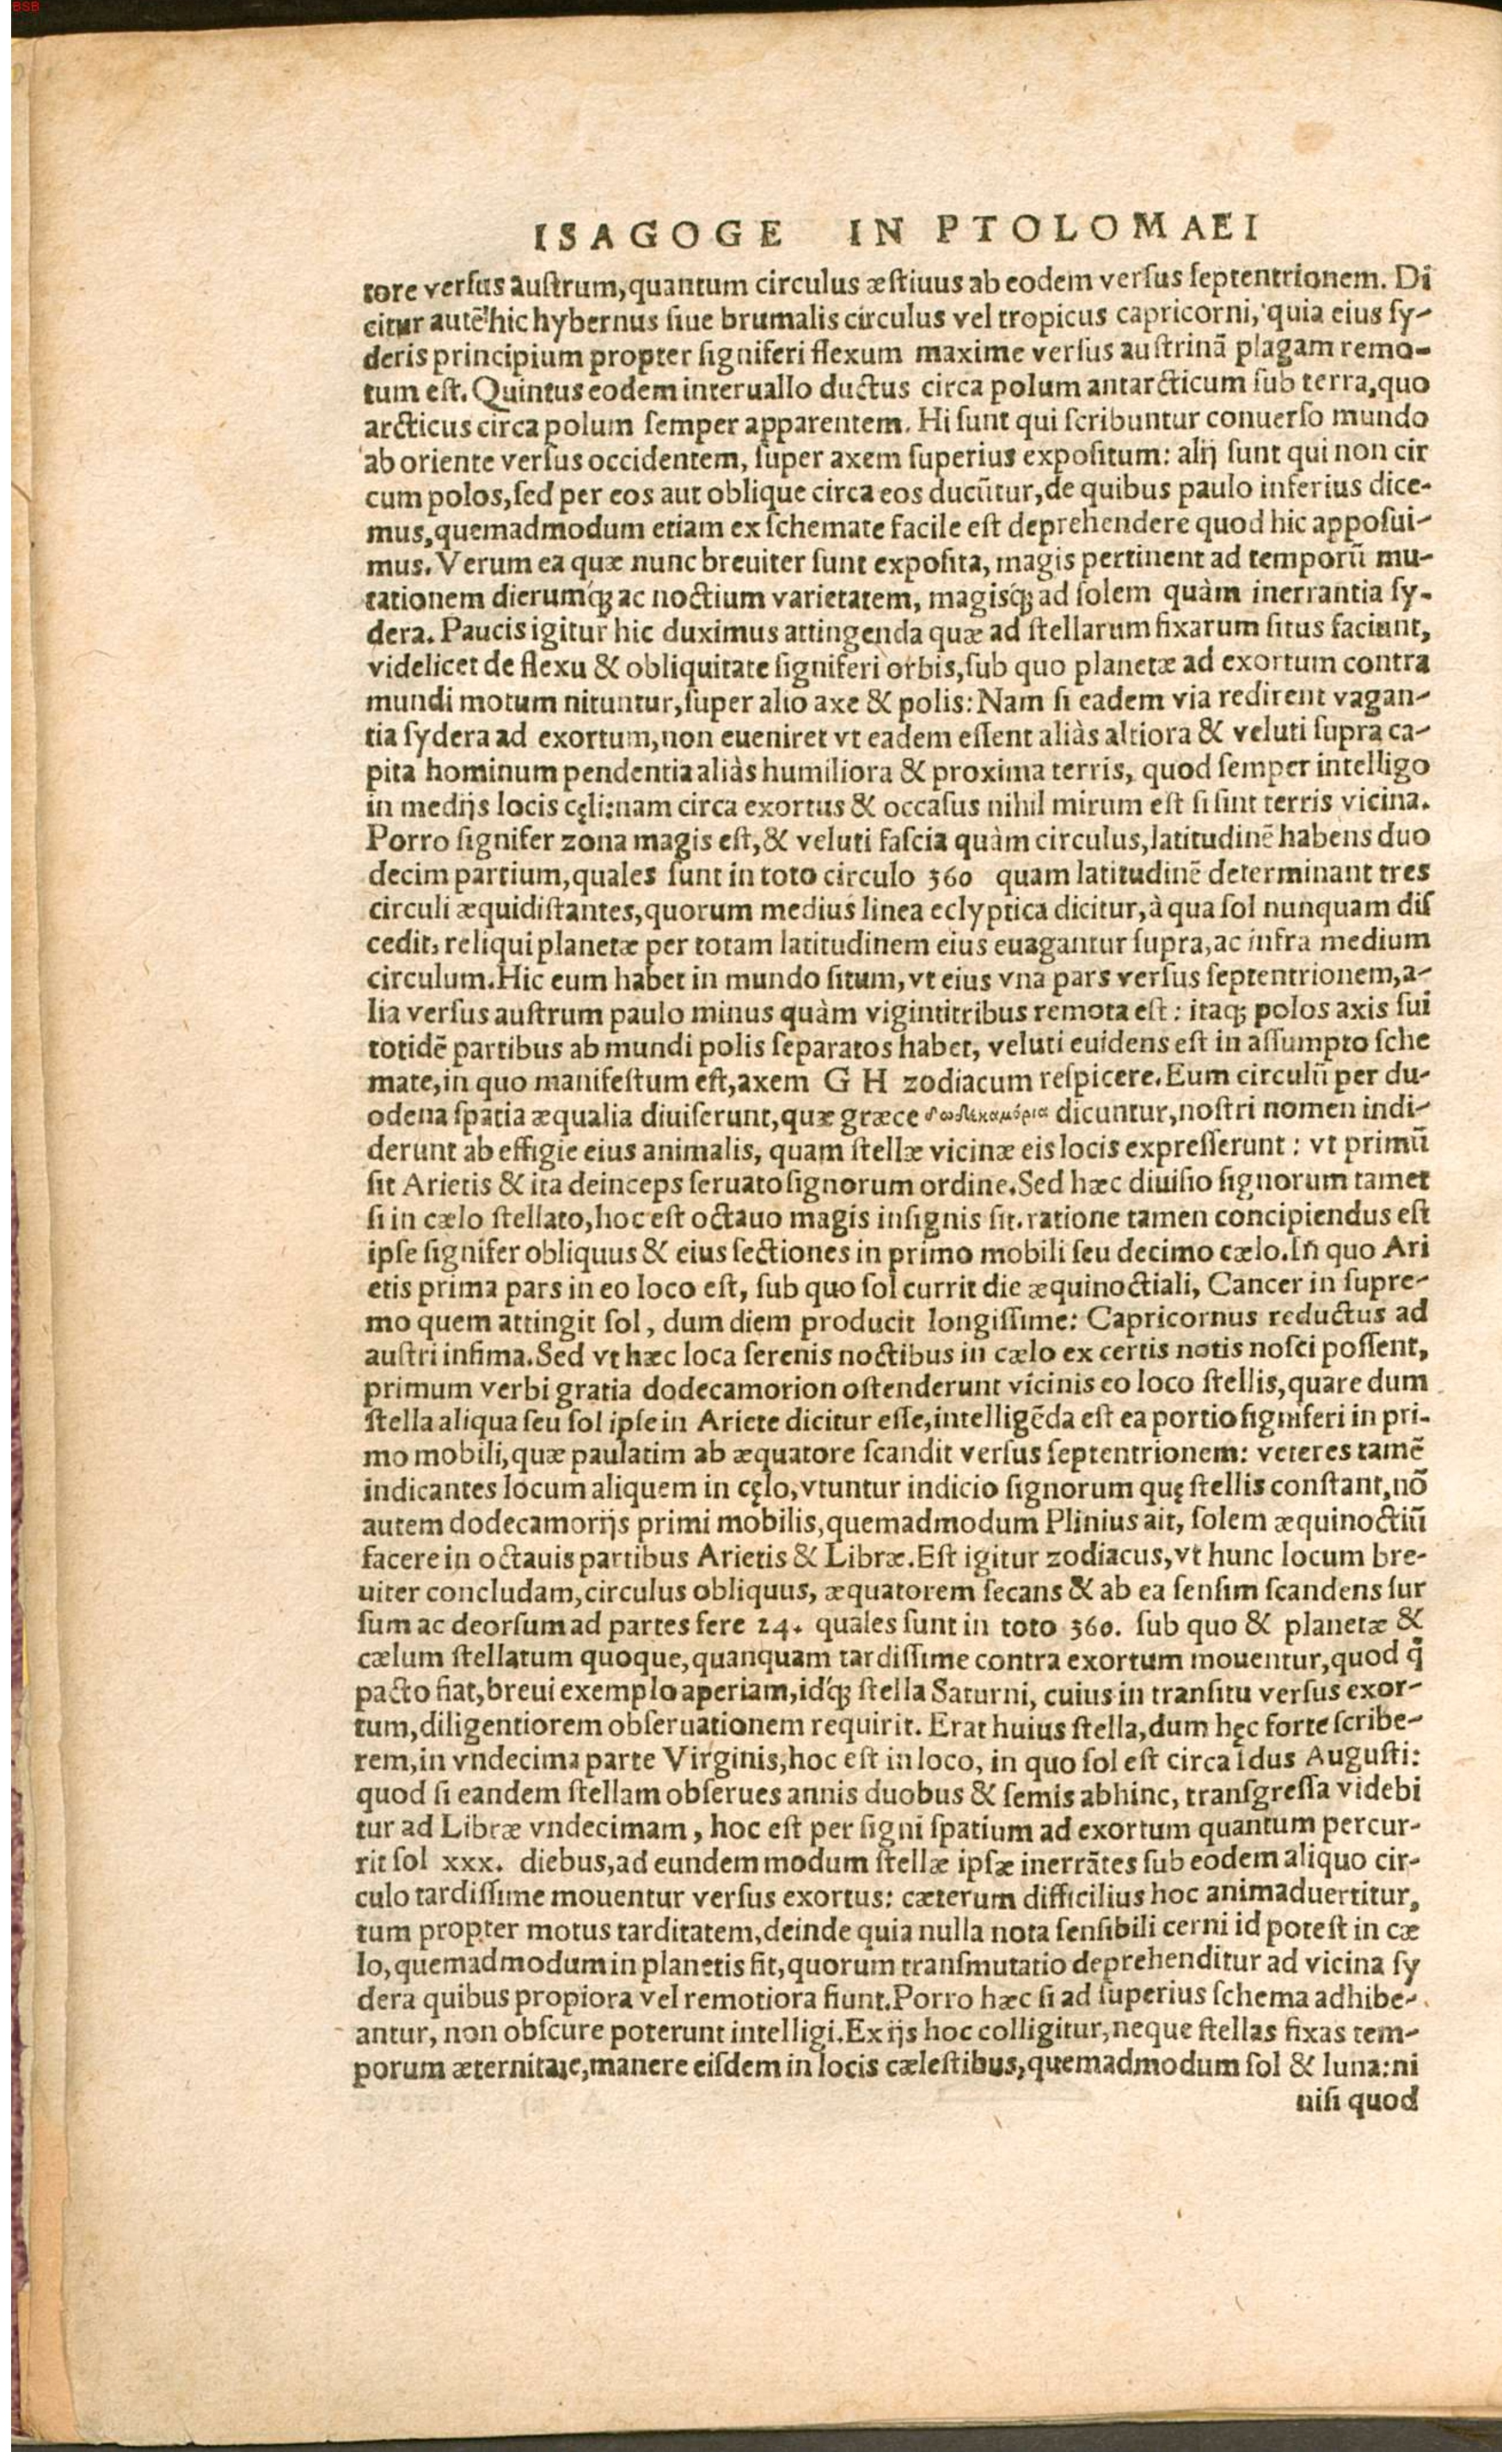 … Loading: Cologne, Publisher unknown, 1537 · A3v …